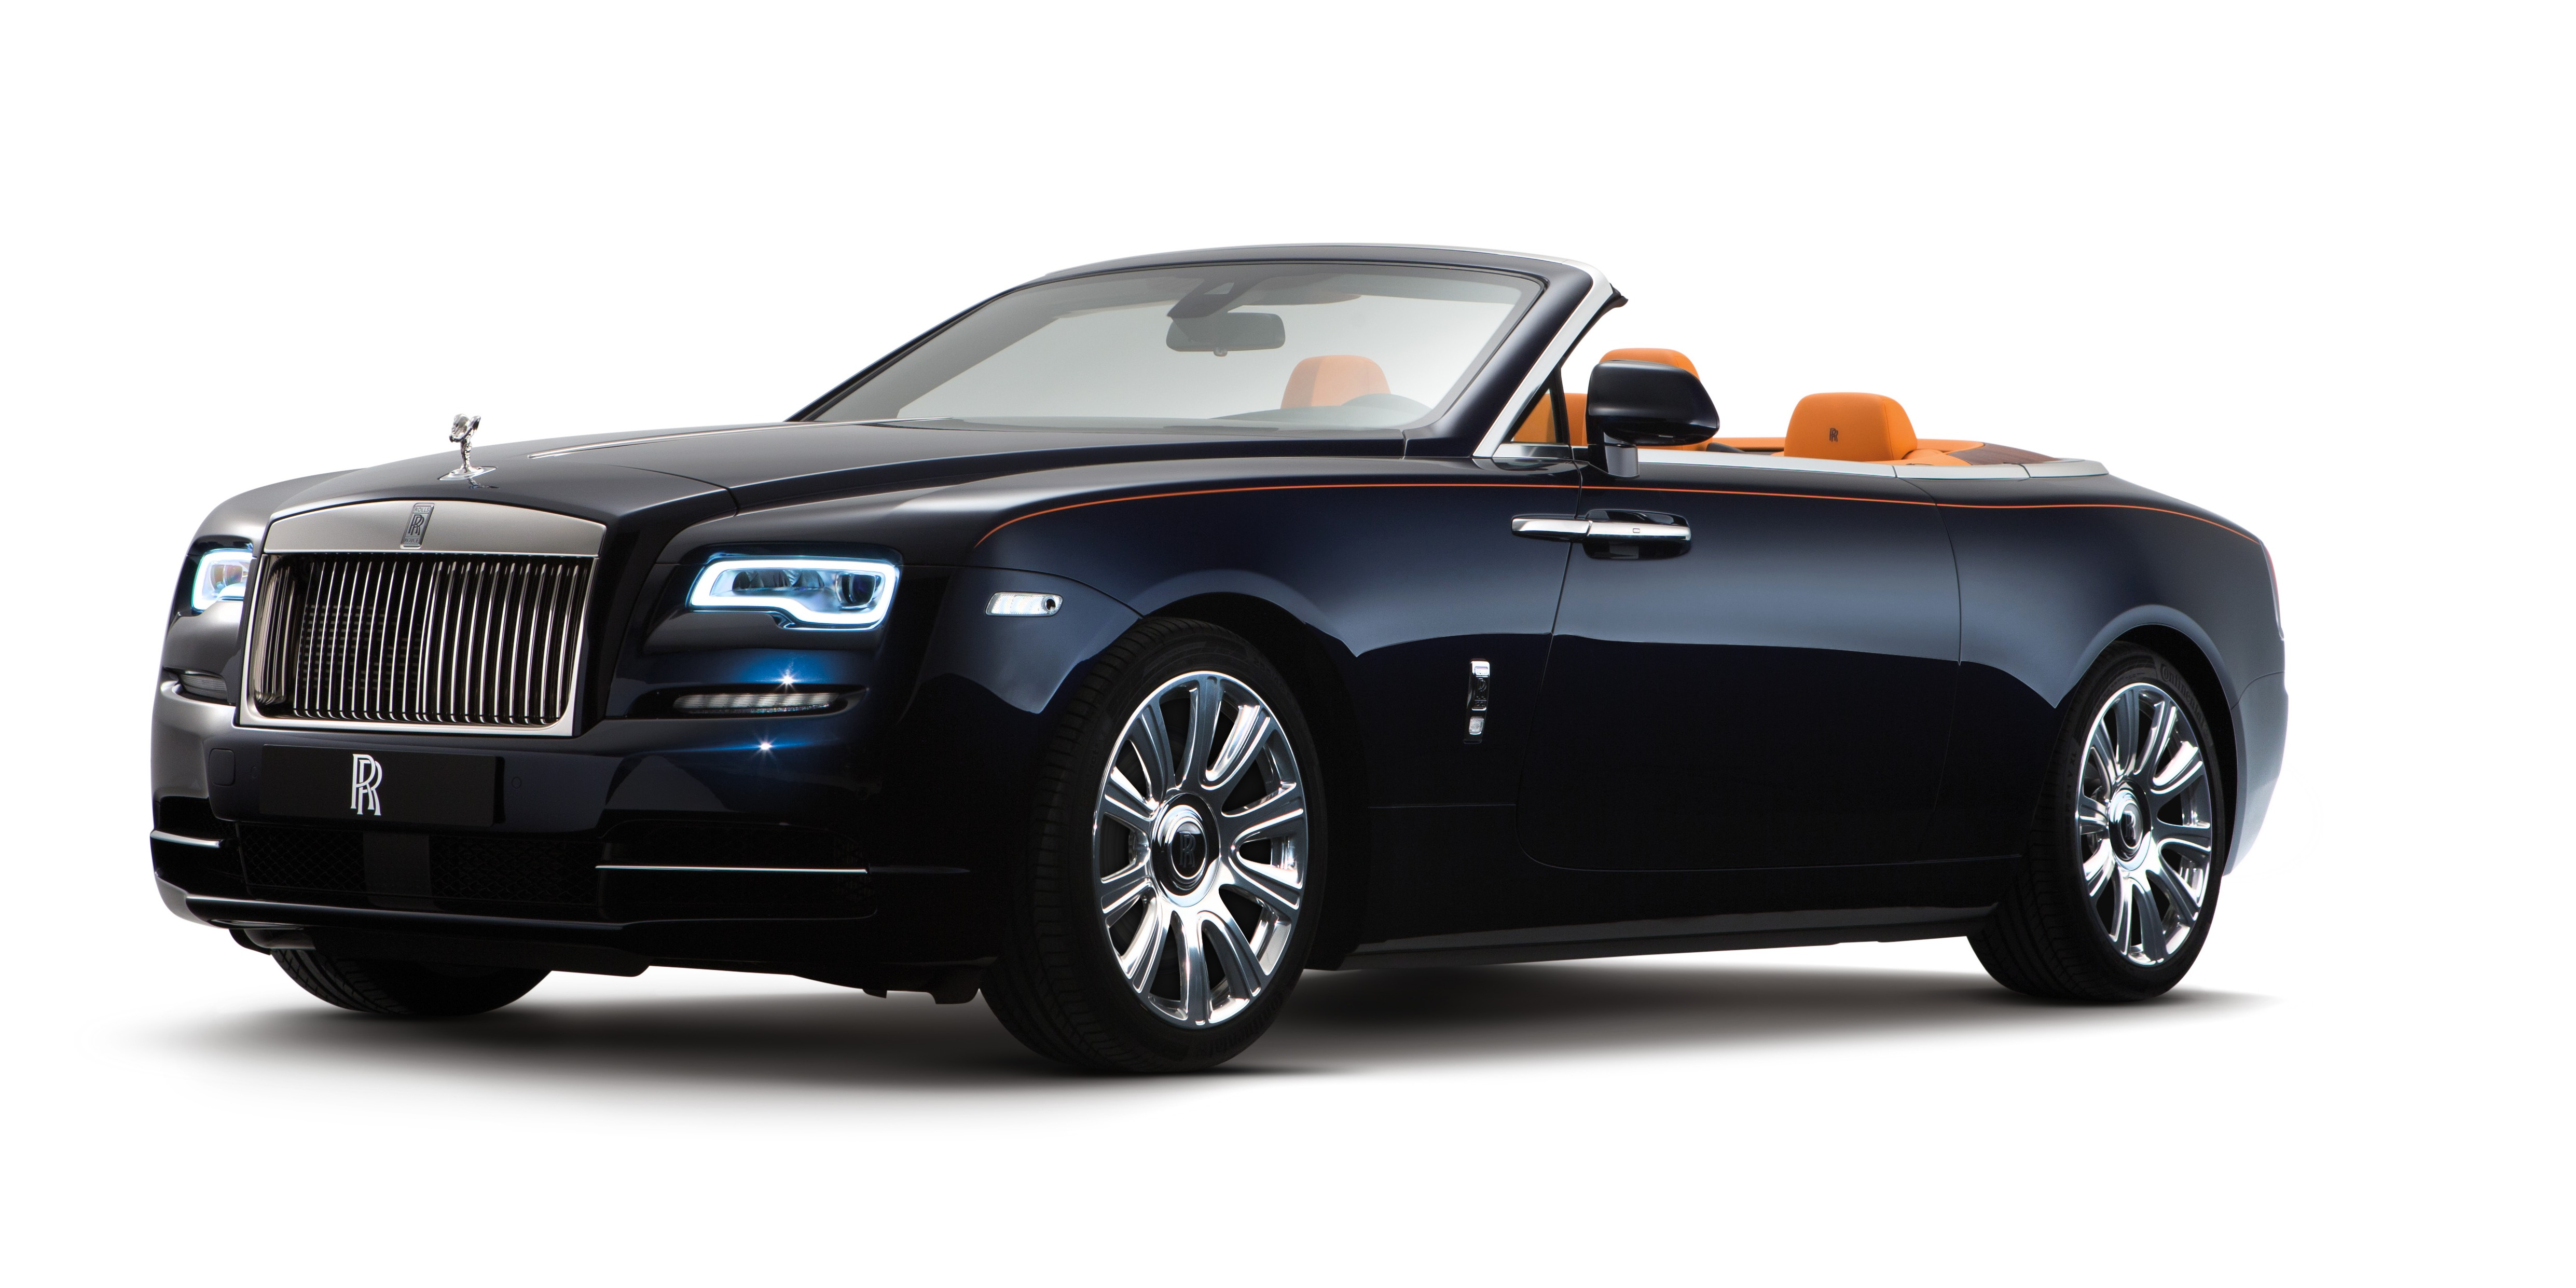 New Model Perspective RollsRoyce Dawn Goes Hunting For Young - Rolls royce financial services